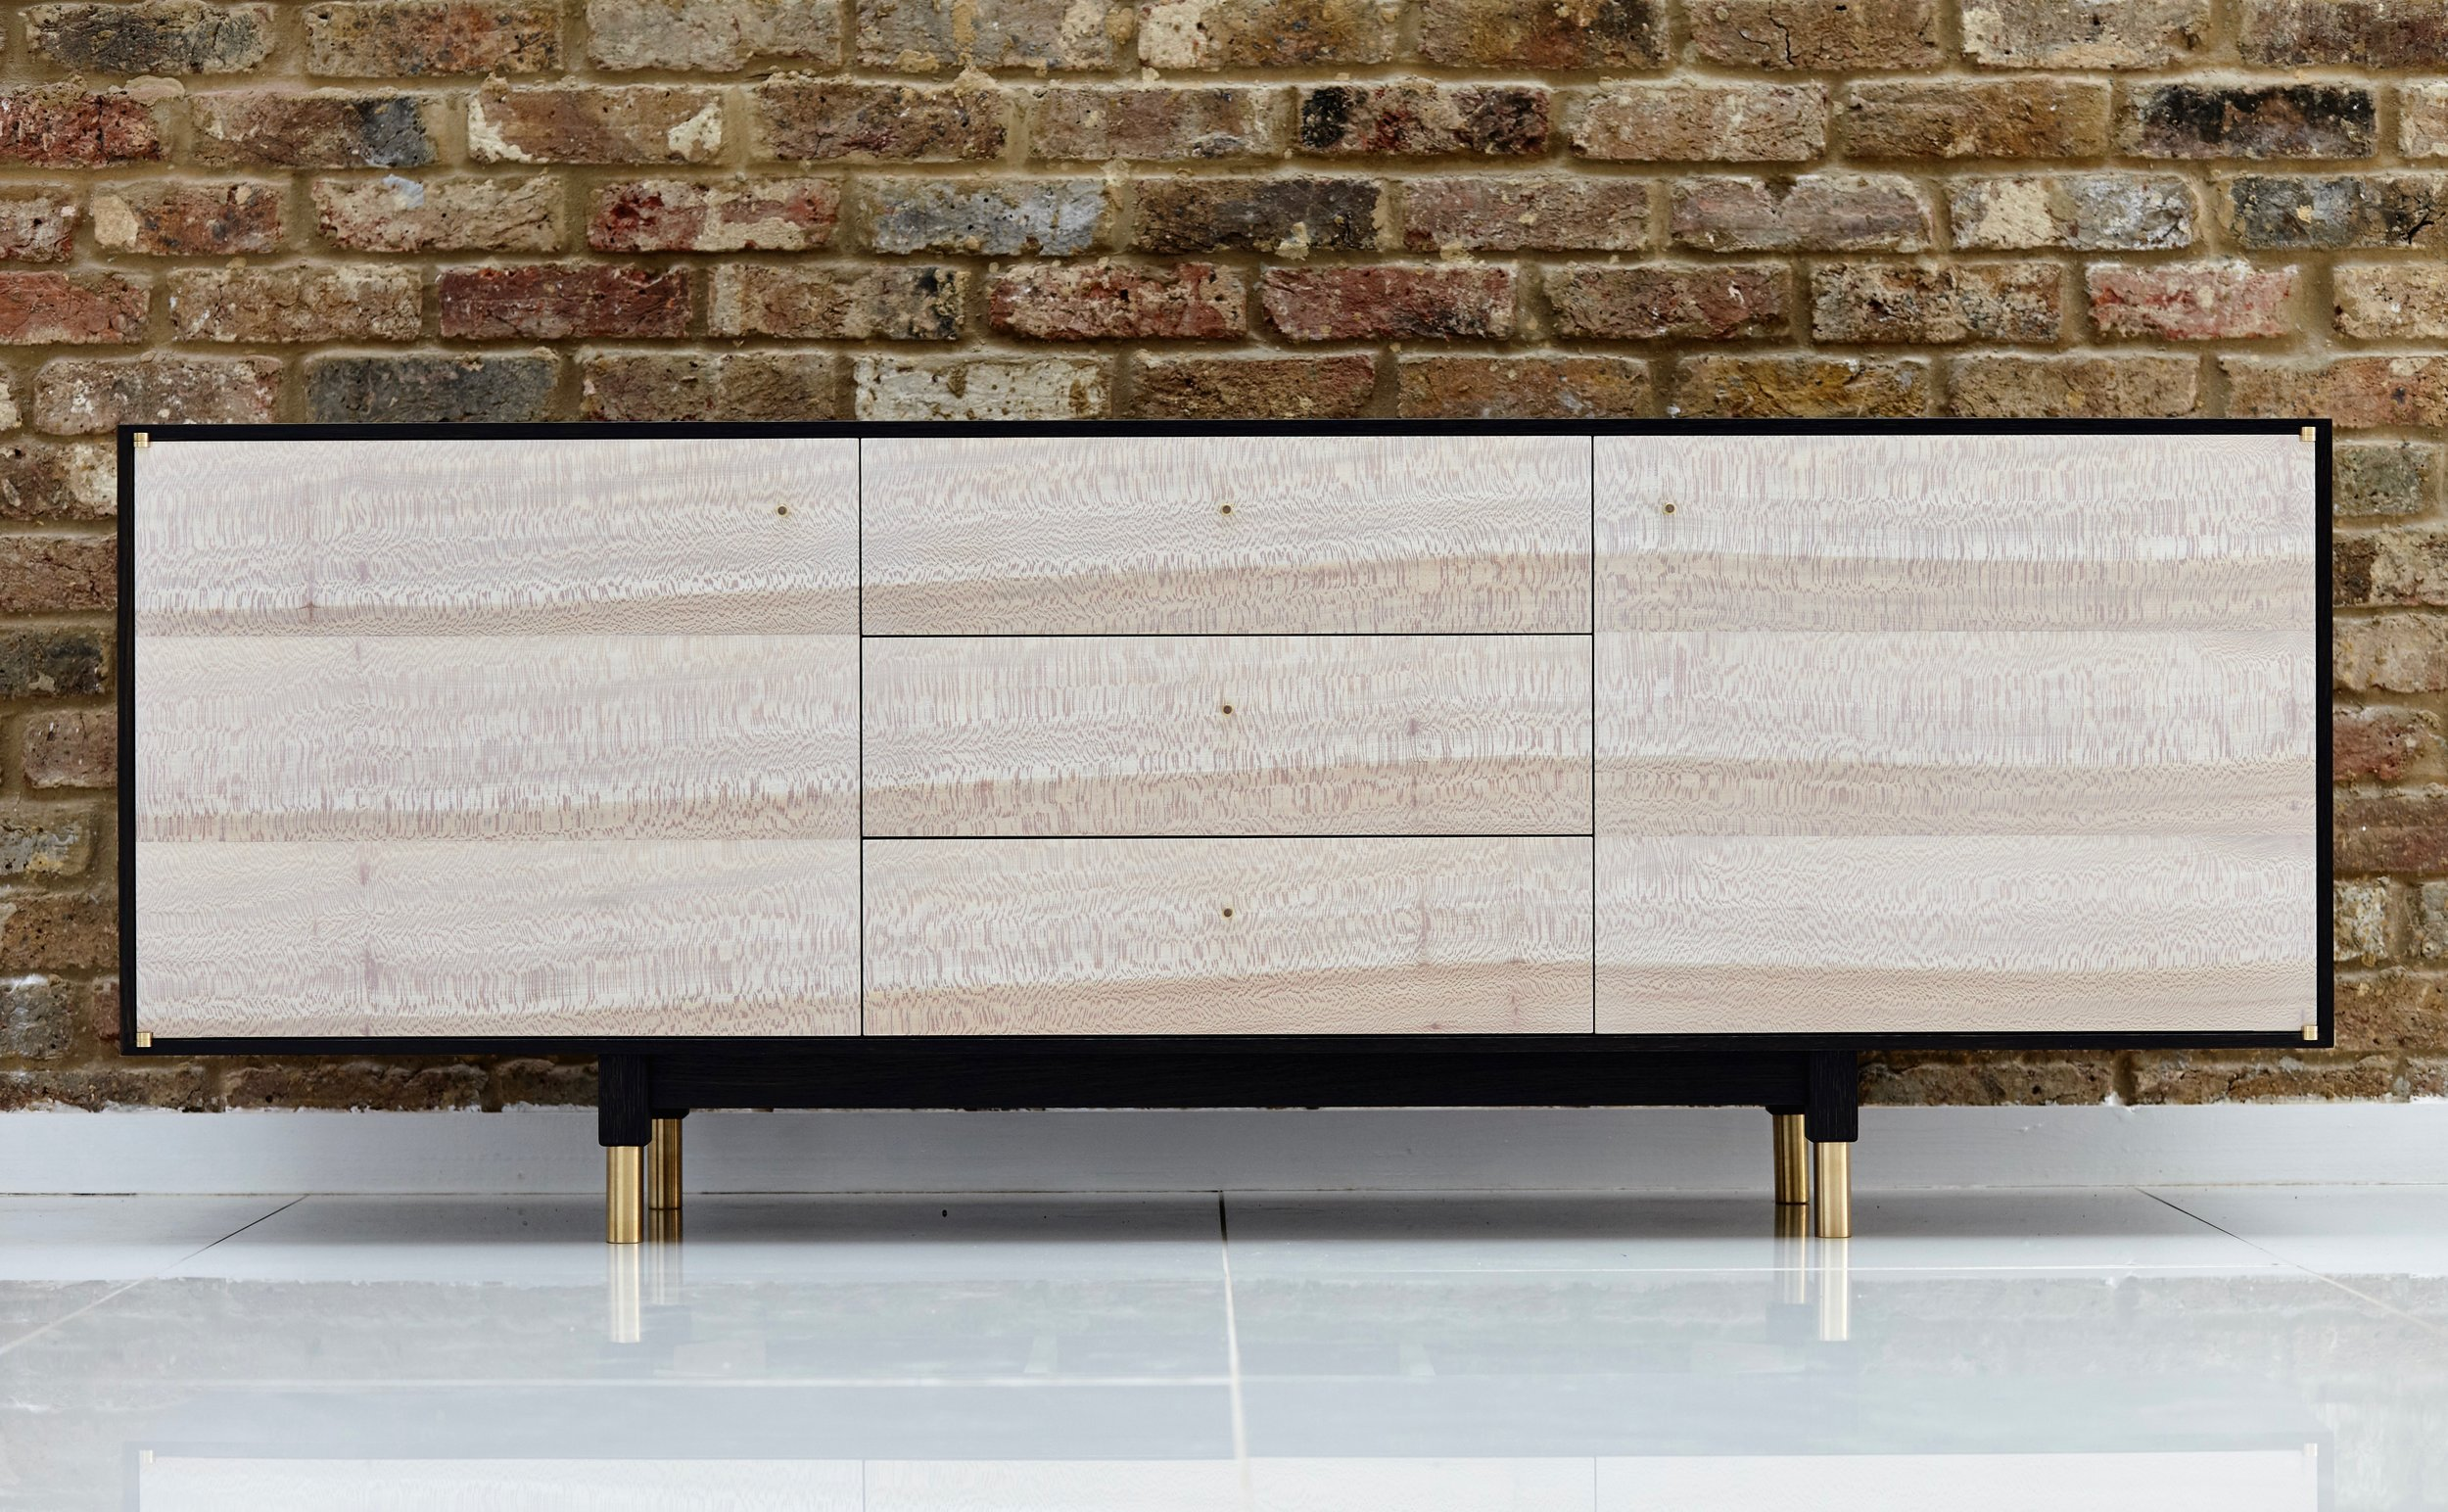 RHMB - RHMB was founded by Robert Brain, an extraordinary cabinet maker with an eye for sourcing traditionally unused woods such as London Plane. Over the last decade, RHMB has primarily focused on producing high-end cabinetry for private clients. Robert's growing furniture collections have been showcased at The London Art Fair and Decorex International. Notable press include The FT's How To Spend It, City AM and Design Milk.